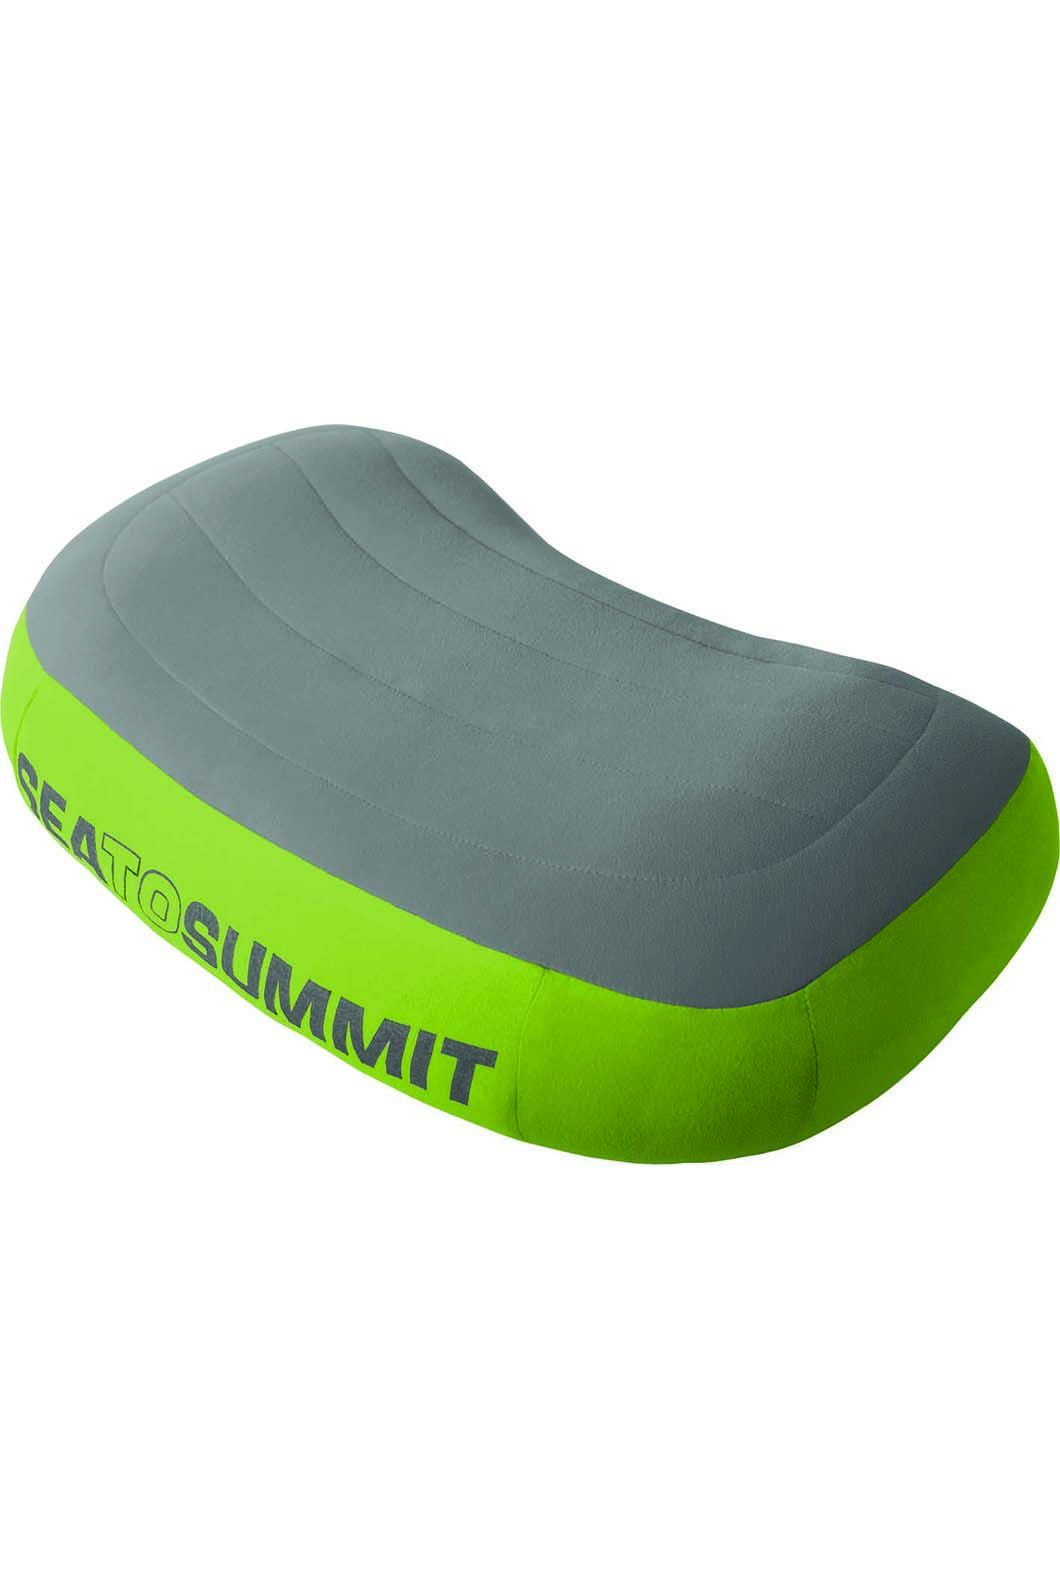 Sea to Summit Aeros Premium Pillow, None, hi-res